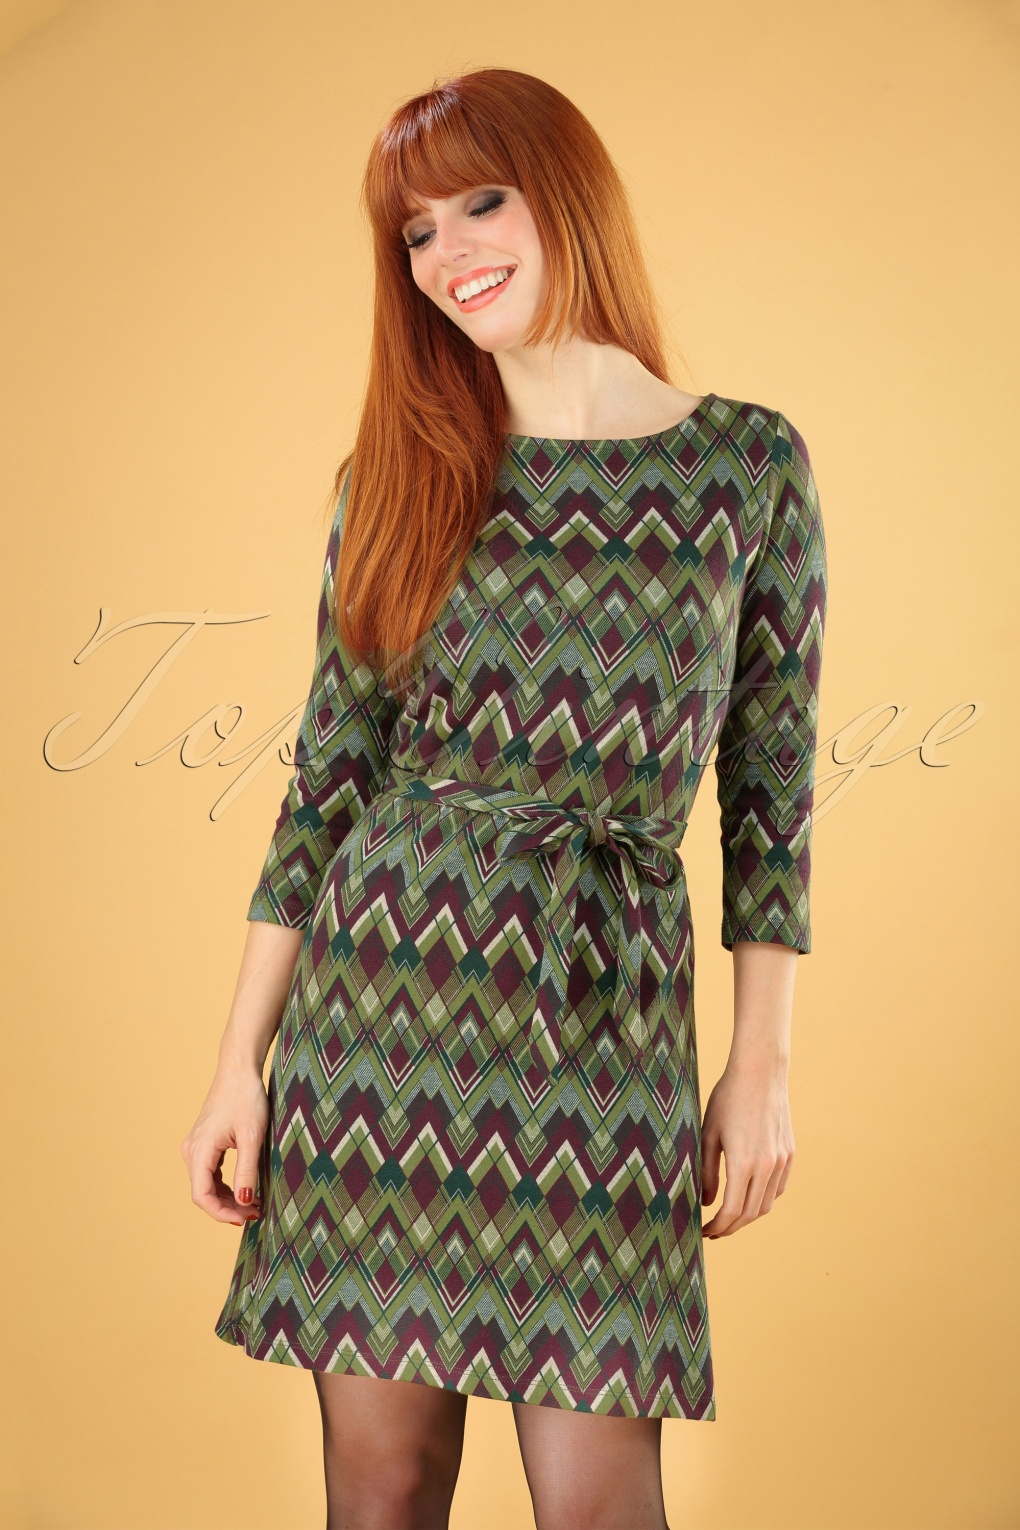 1960s Style Dresses, Clothing, Shoes UK 60s Zoe Skye Dress in Posey Green £78.72 AT vintagedancer.com